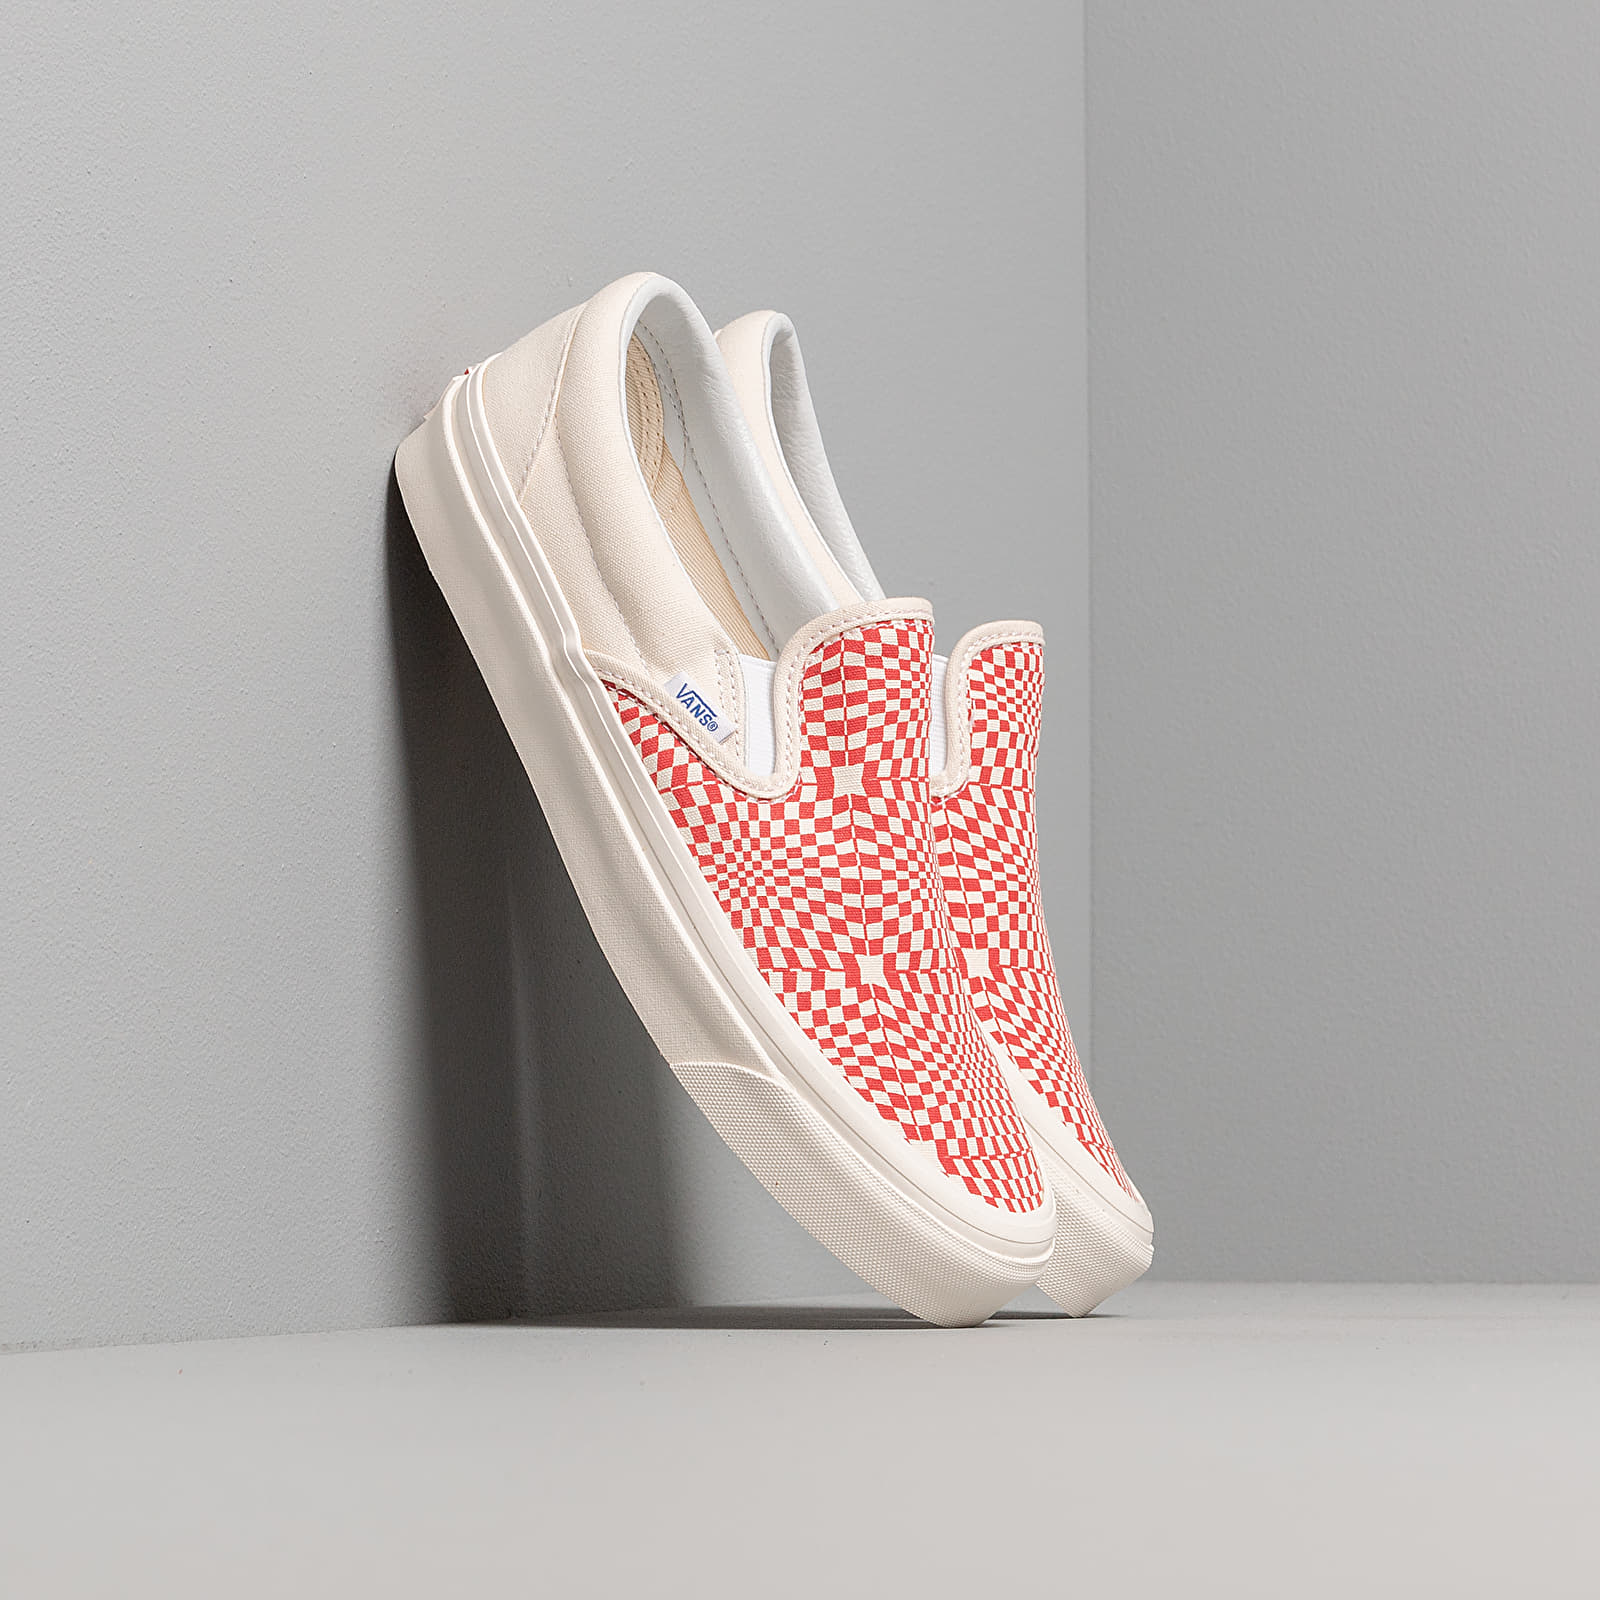 Vans Classic Slip-On 98 DX (Anaheim Factory)